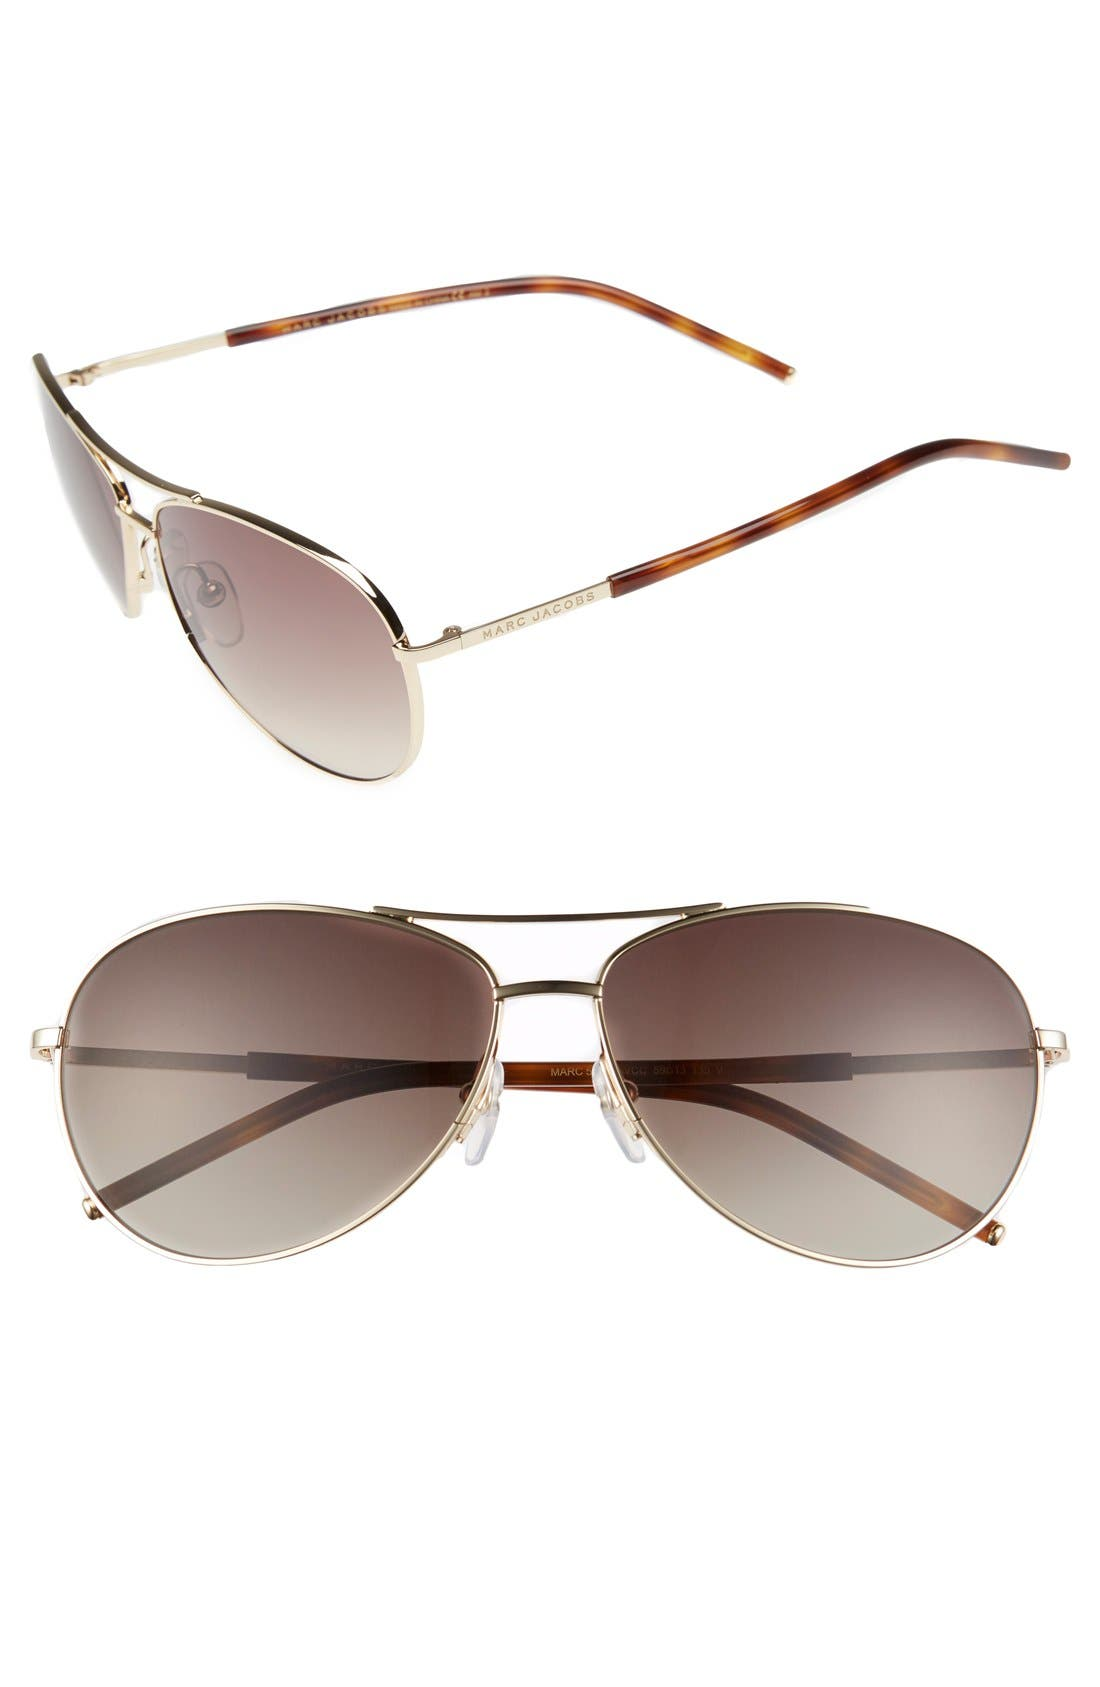 d1caf4b8bb Marc Jacobs Marc 59 Wm4 Jd Gold Copper Aviator Sunglasses